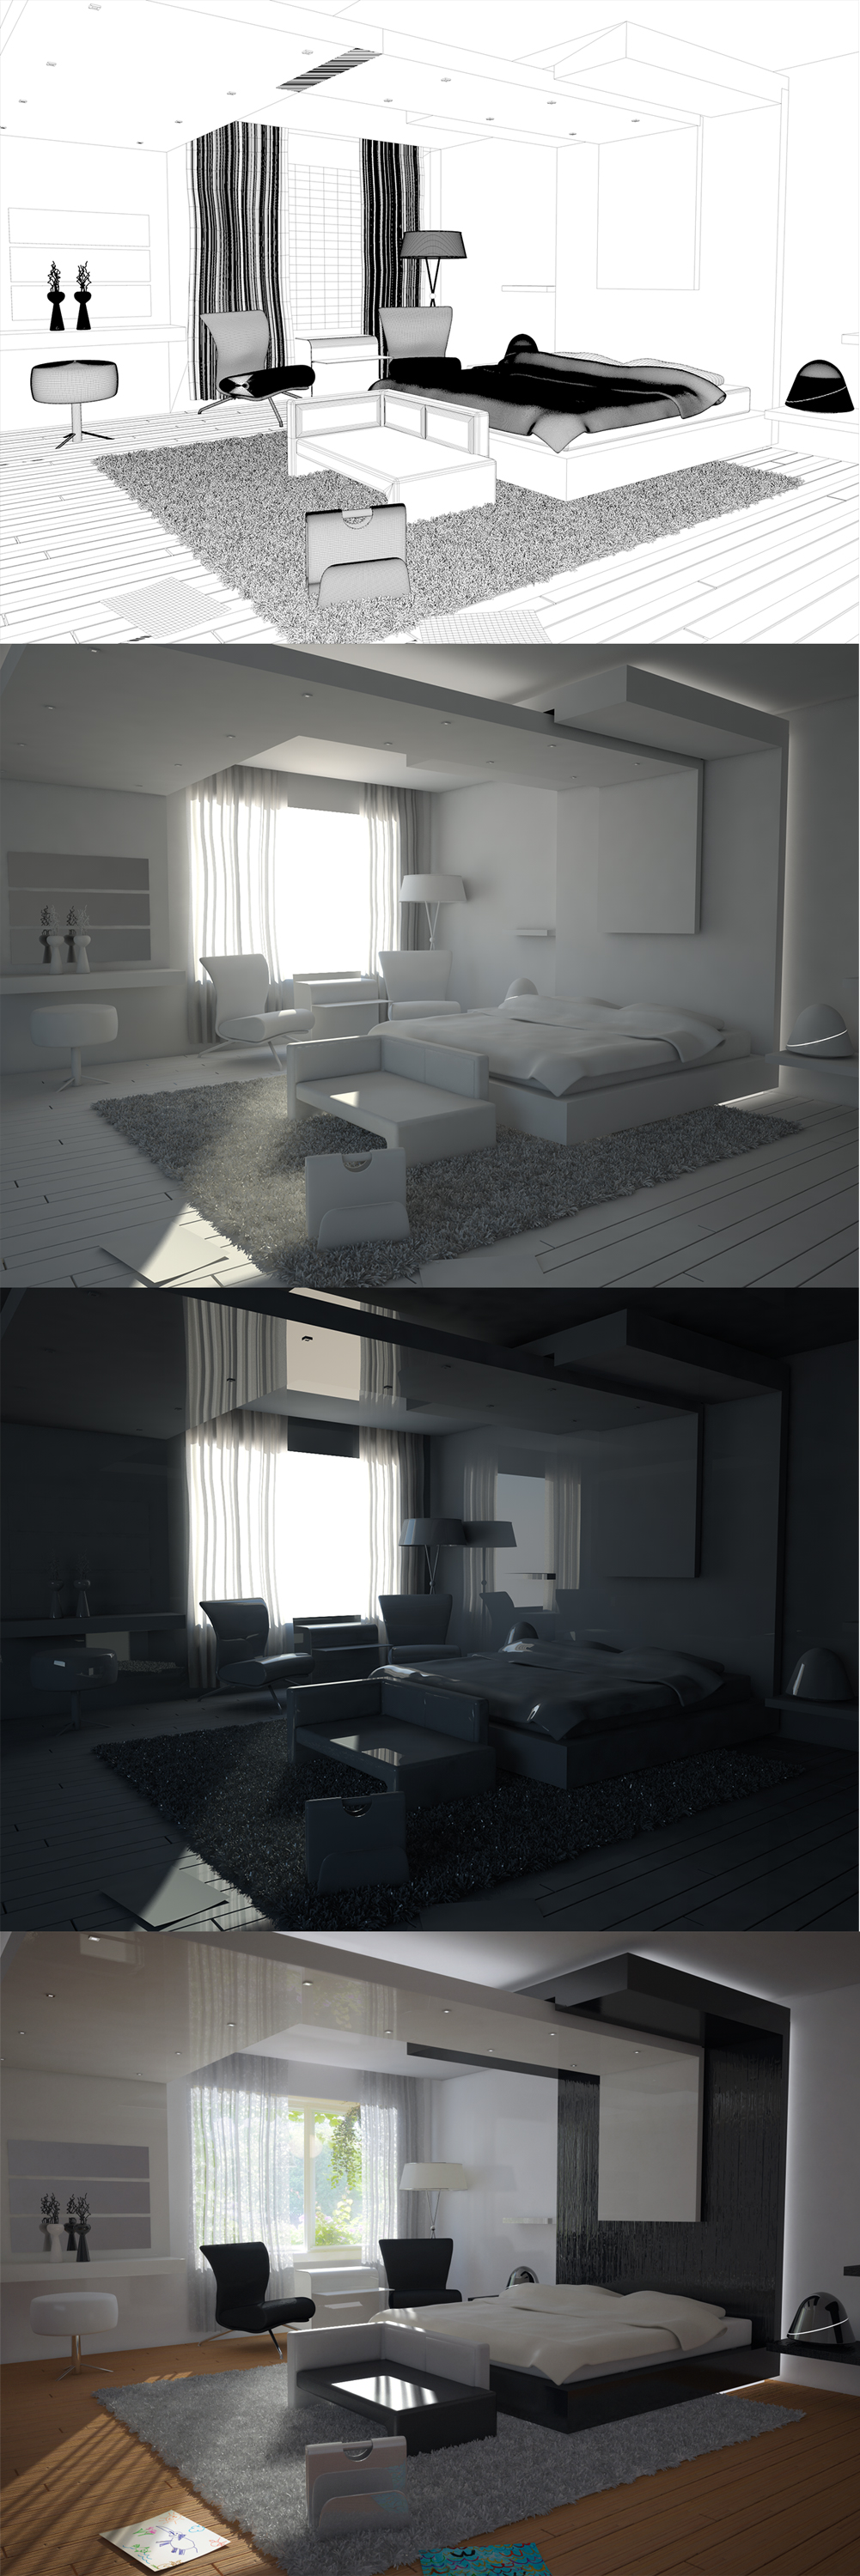 3D render making off image showing how a 3D bedroom was created in 4 stages